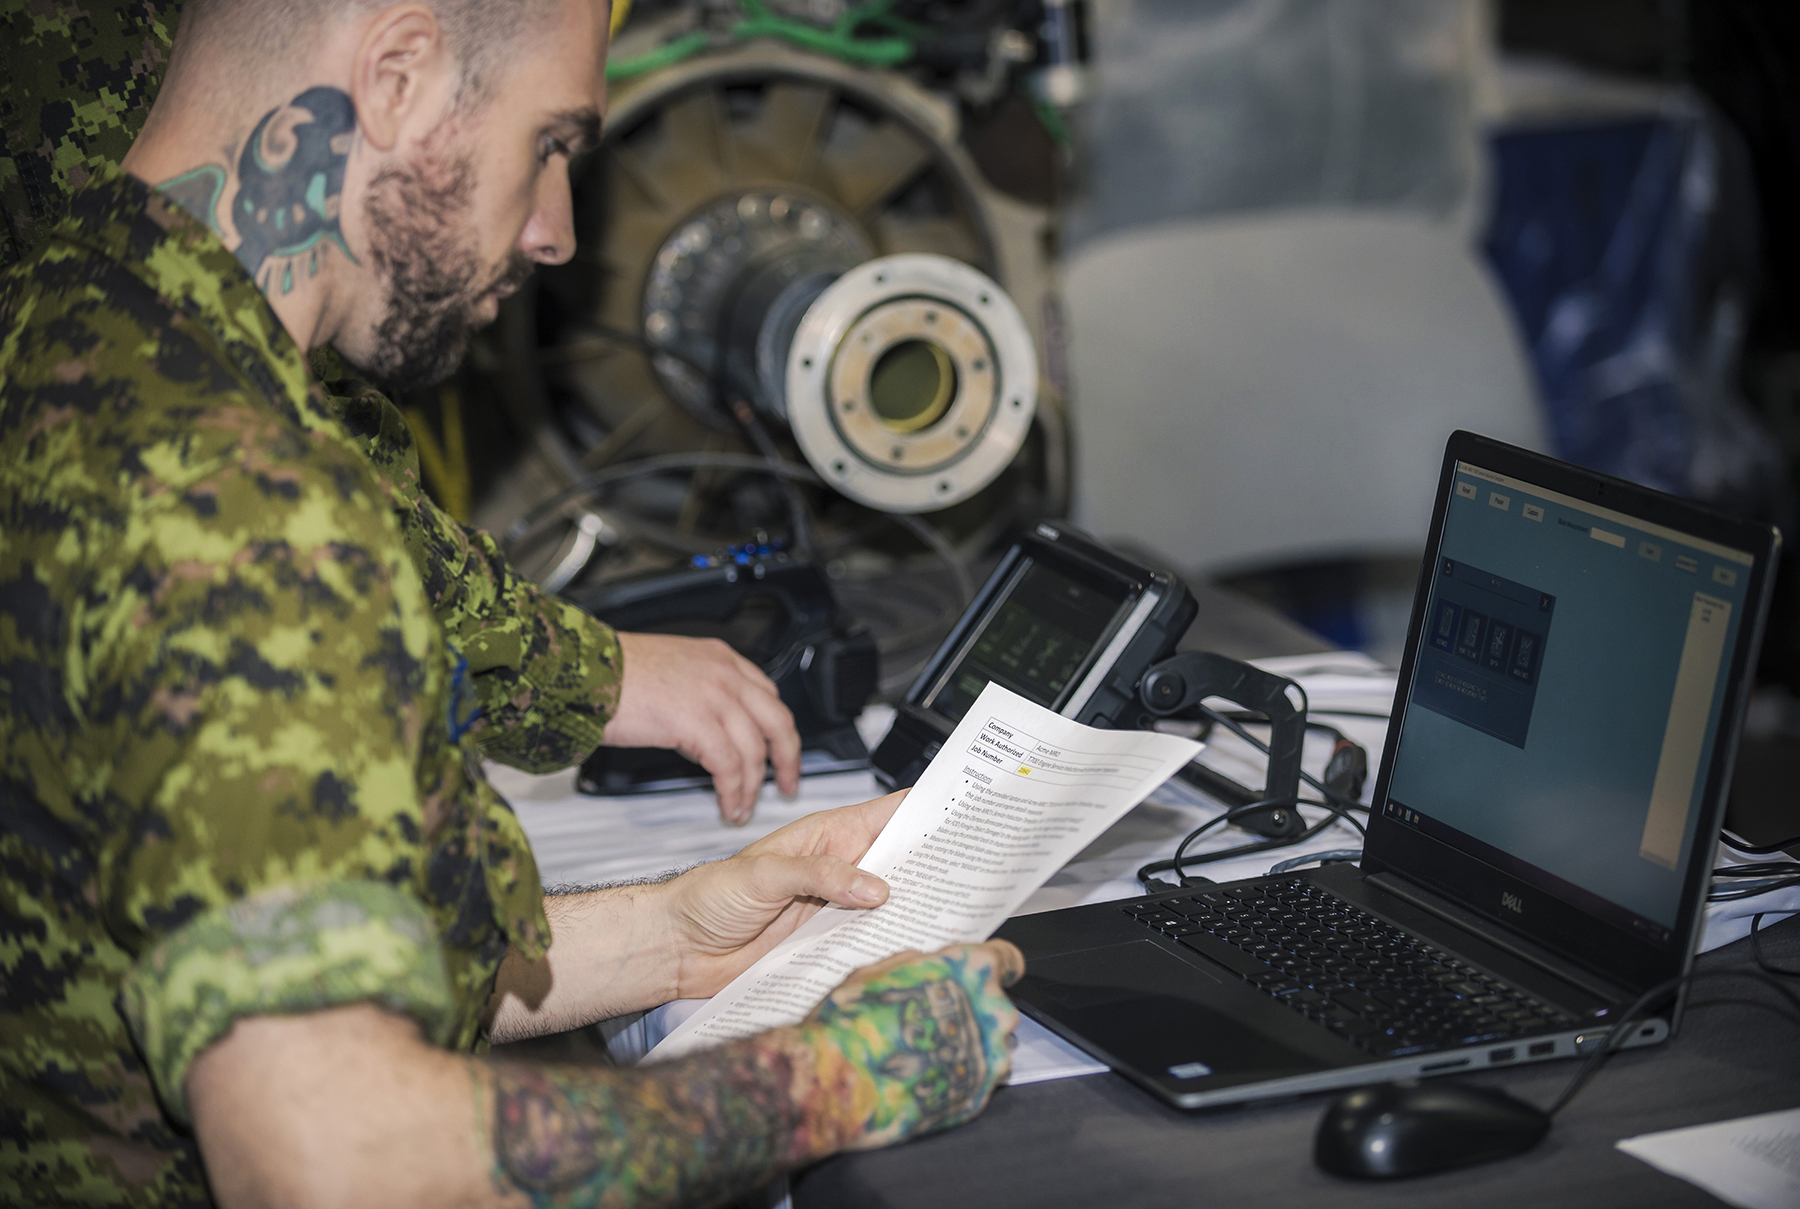 Corporal Marc-André Duguay, AVS, from 424 Transport and Rescue Squadron, Trenton and a member of the RCAF SAR Maintenance Team, reads the instructions for an engine service task. PHOTO: RCAF